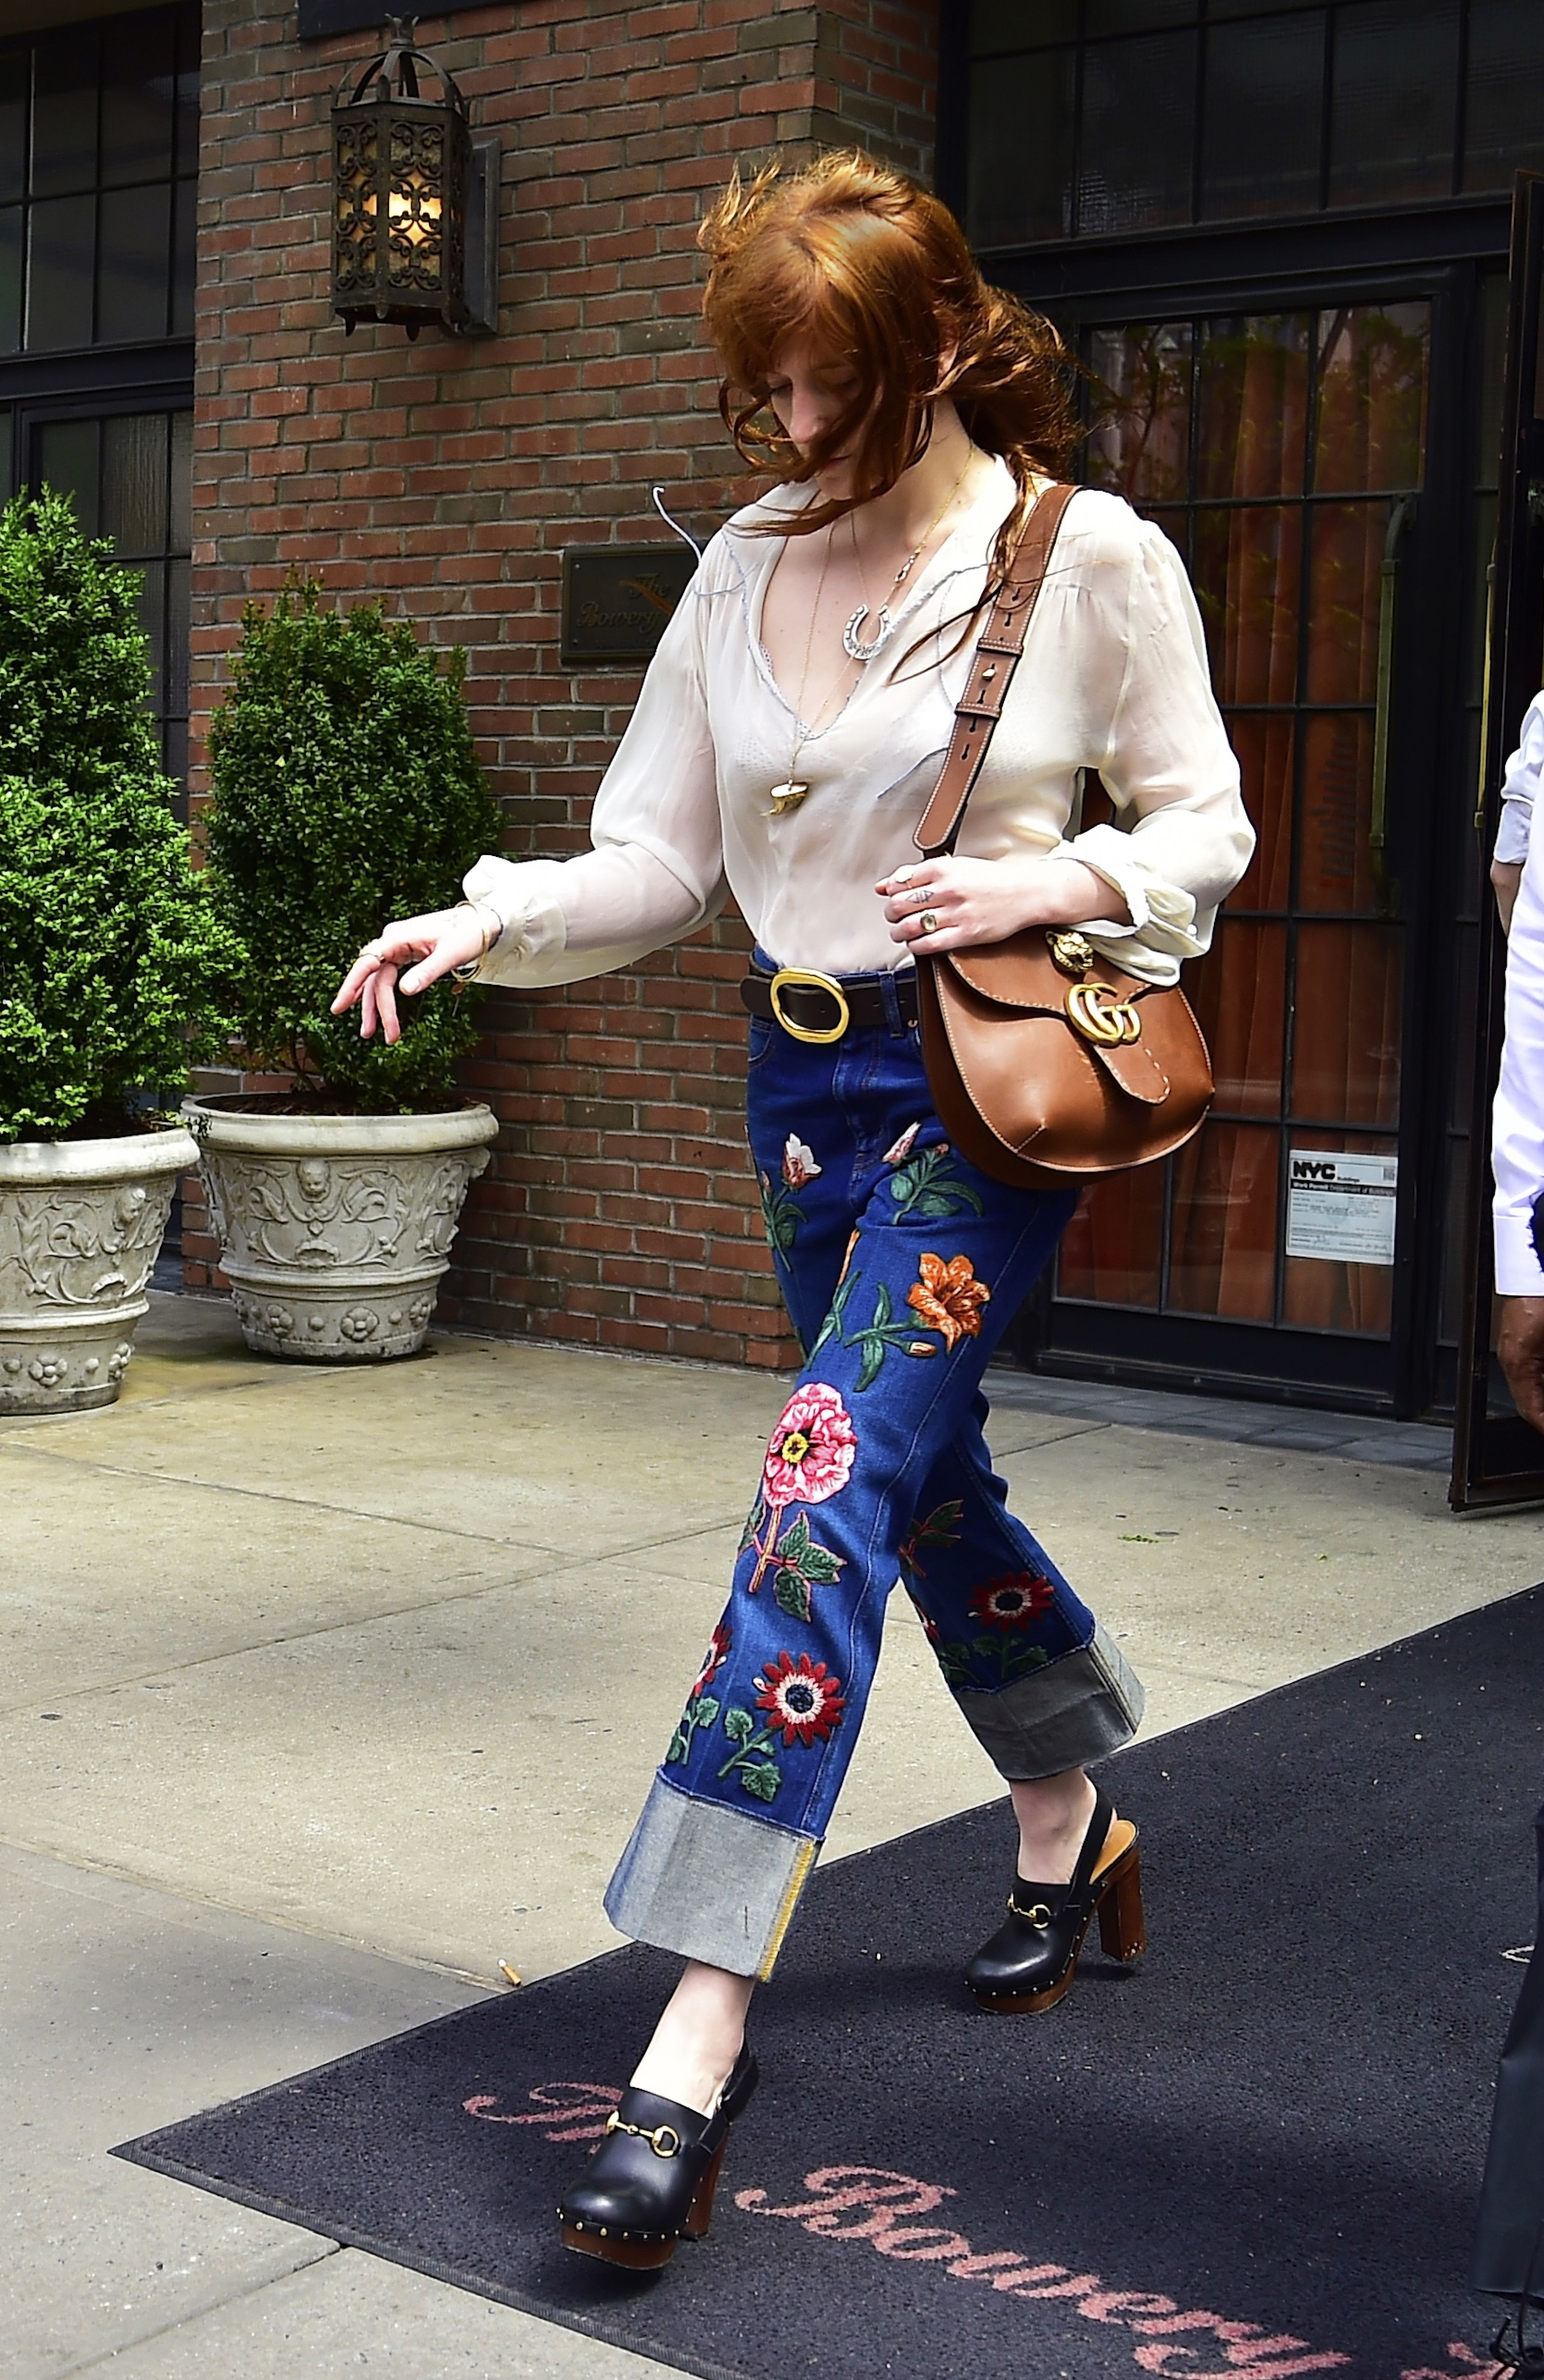 92f465a67b8c Spotted in New York, Florence Welch in Gucci Pre-Fall 2016 patched denim  pants, a GG Marmont shoulder bag and Horsebit clogs.